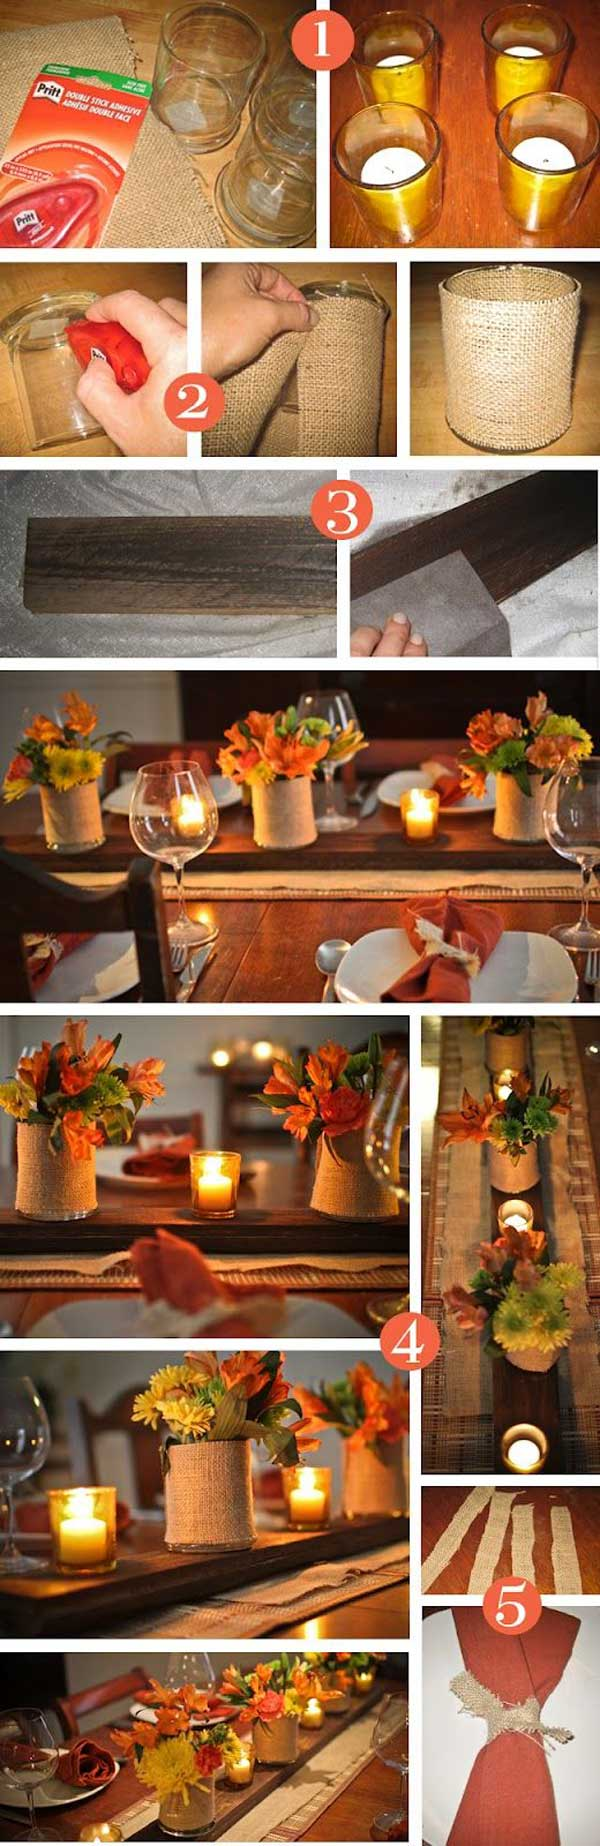 Fall-Home-Decor-ideas-20